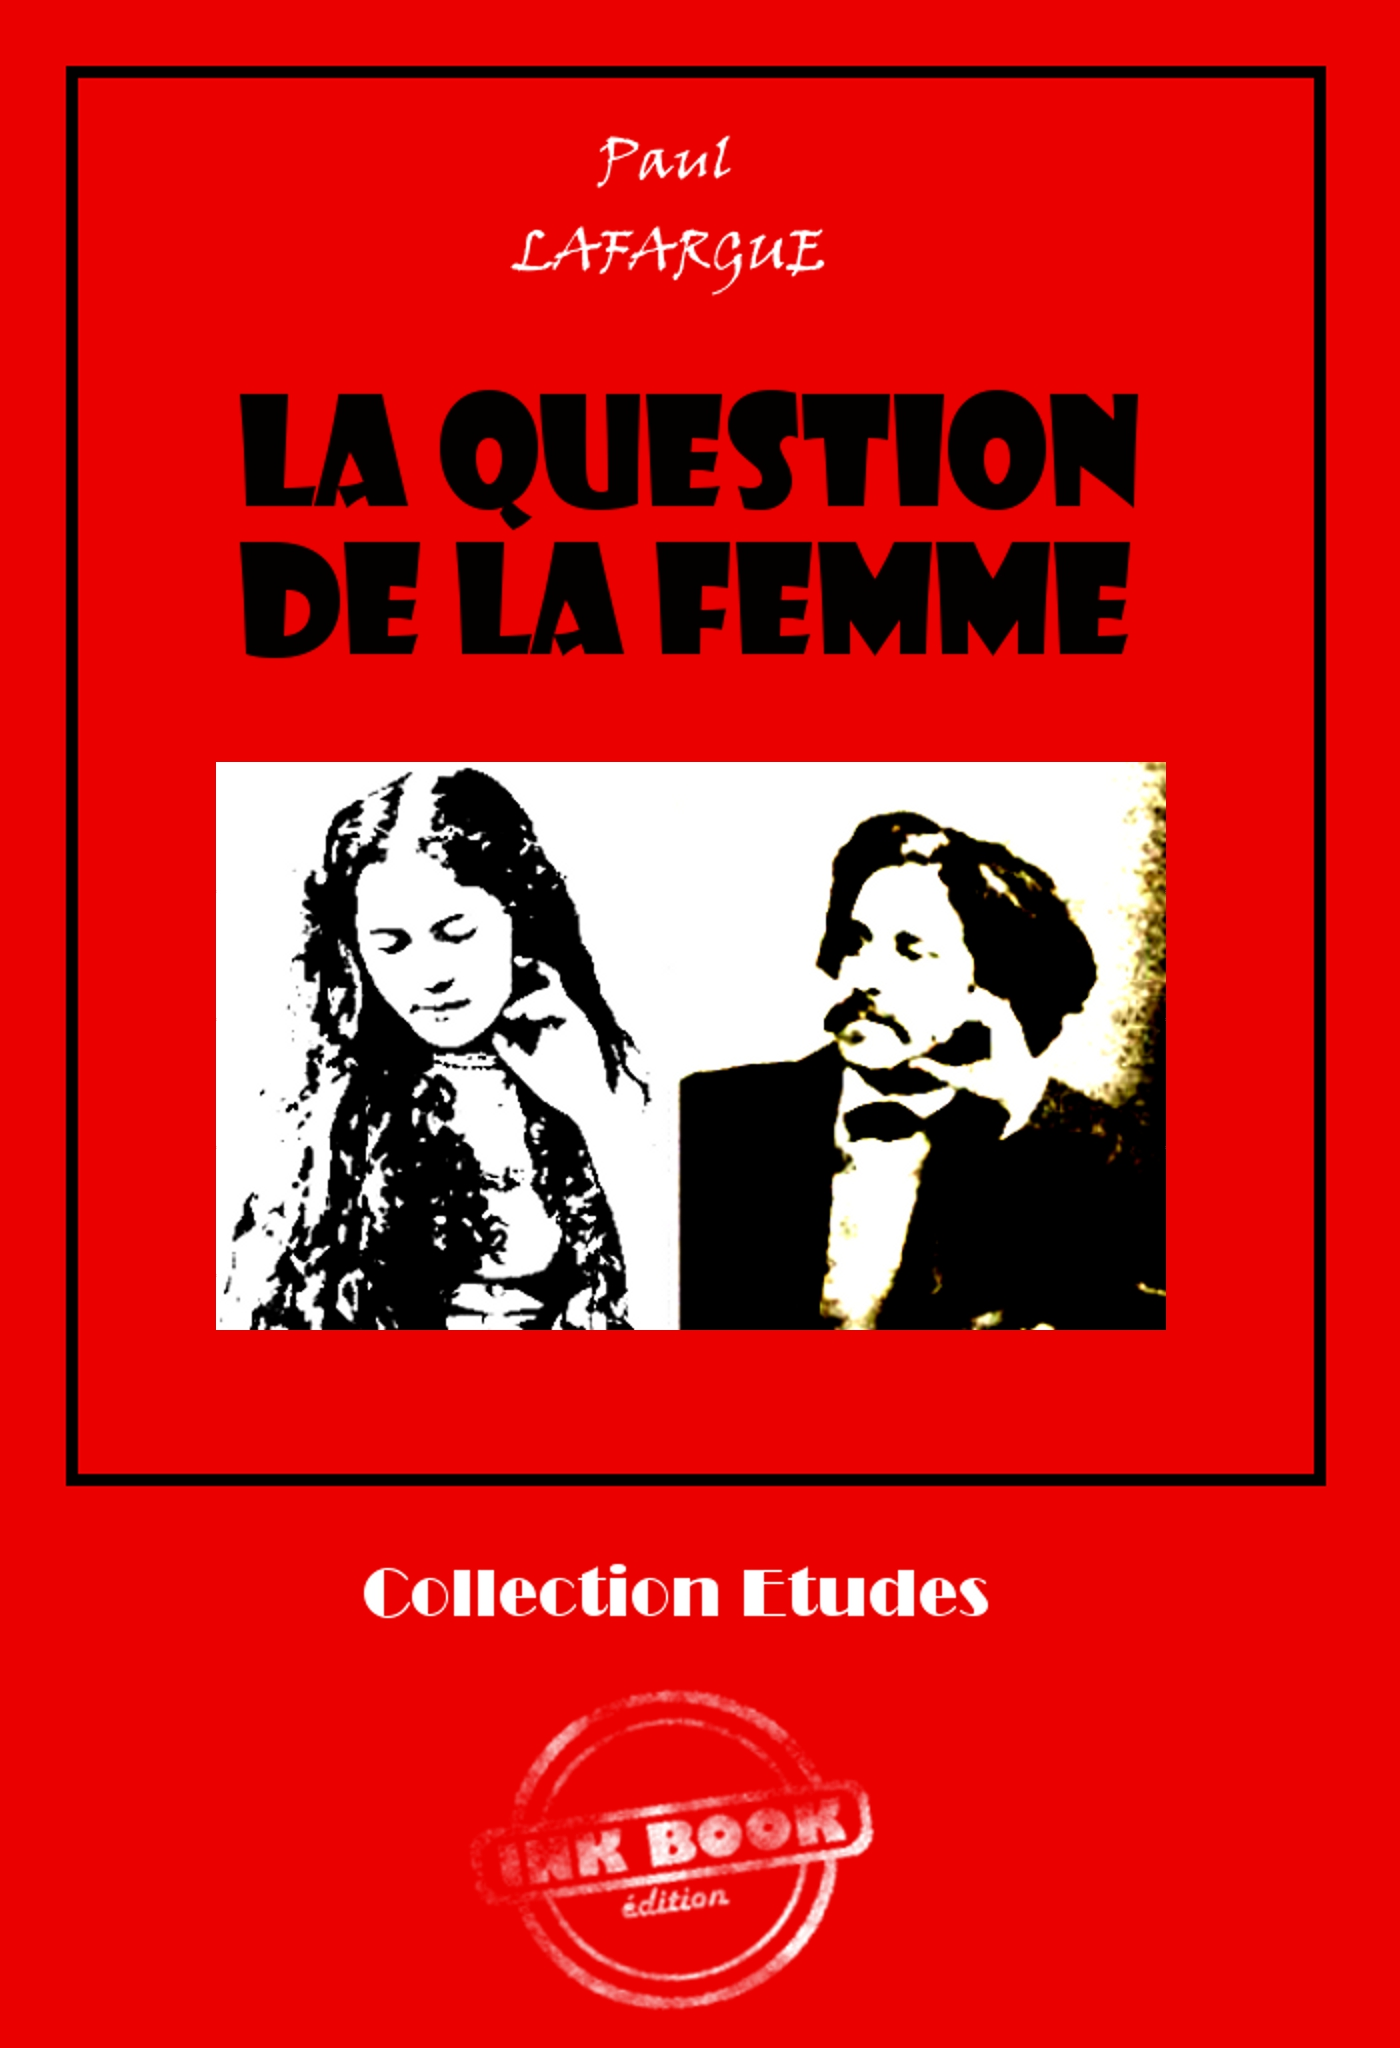 La question de la femme